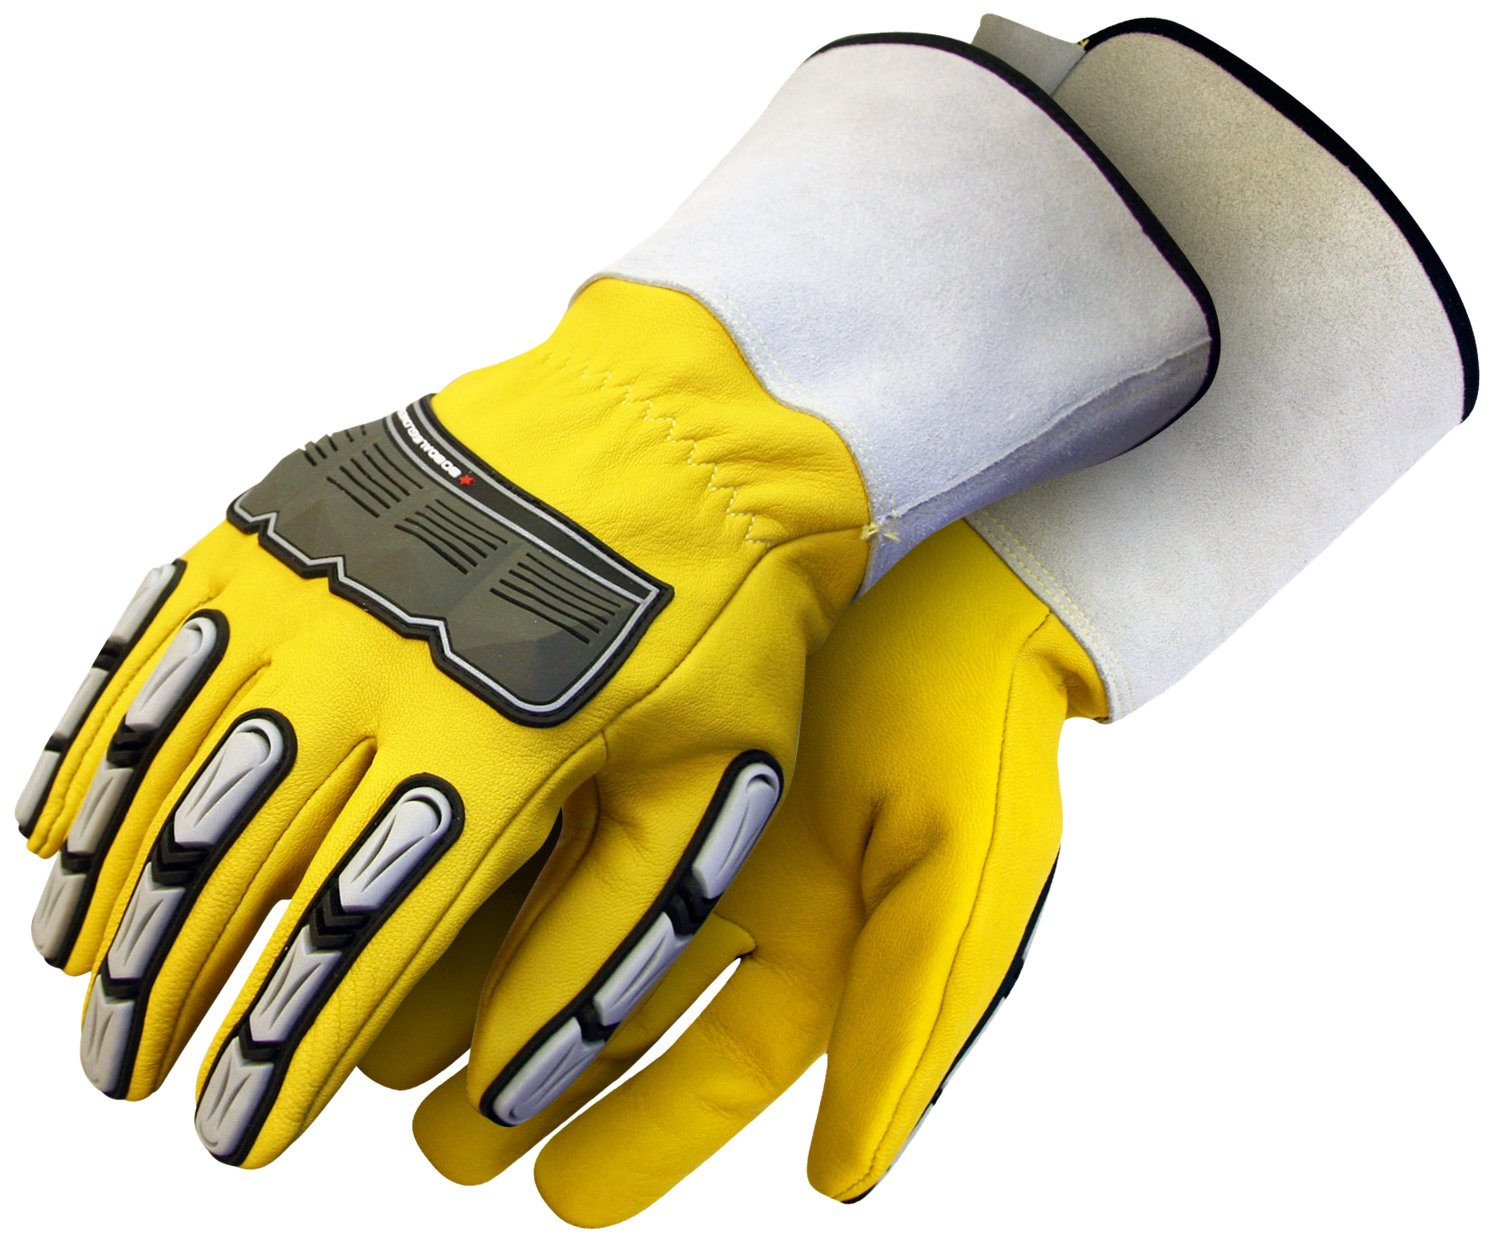 BDG 20-1-10696-L Leather Back Hand Impact Glove with Cuff, Large